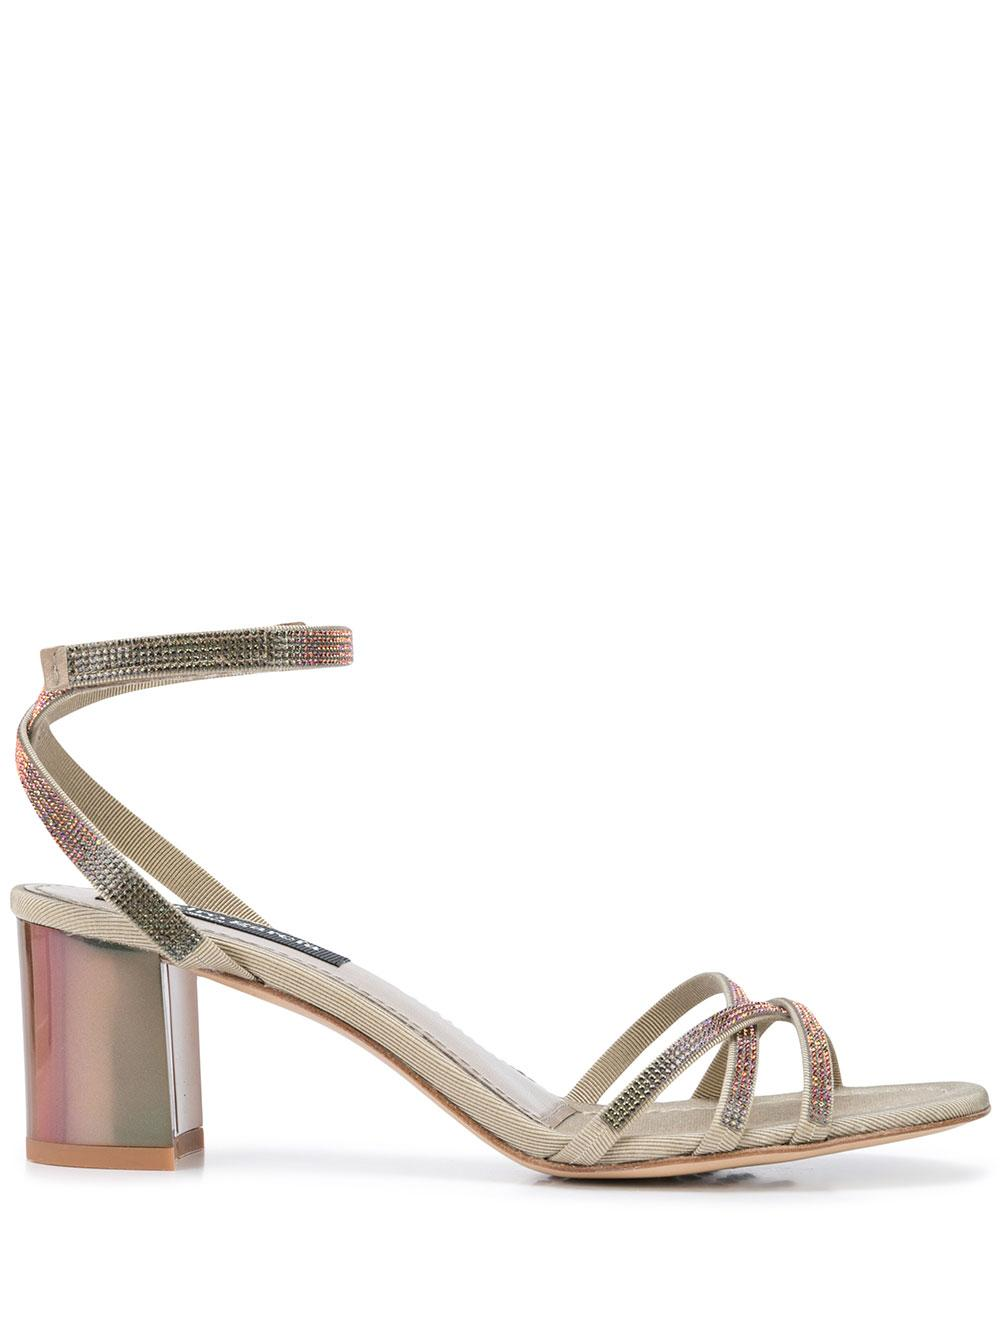 Strappy Block Heel Sandal With Crystals